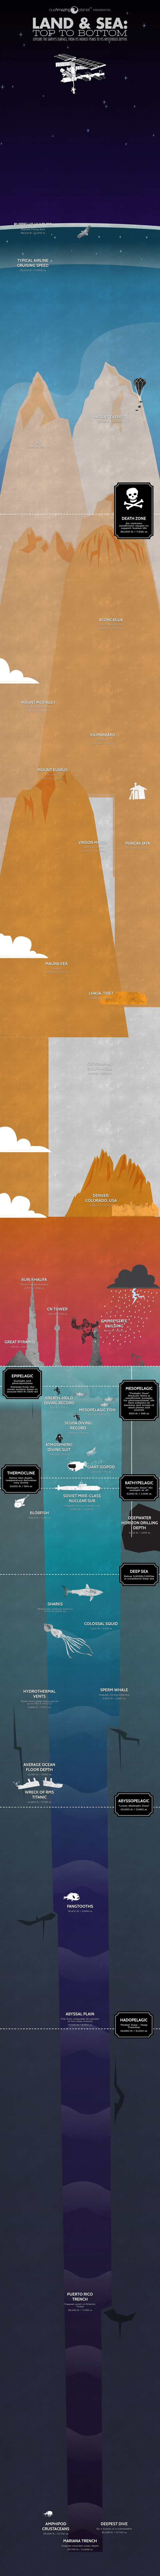 From space to sea. From top to bottom. #infographic #design